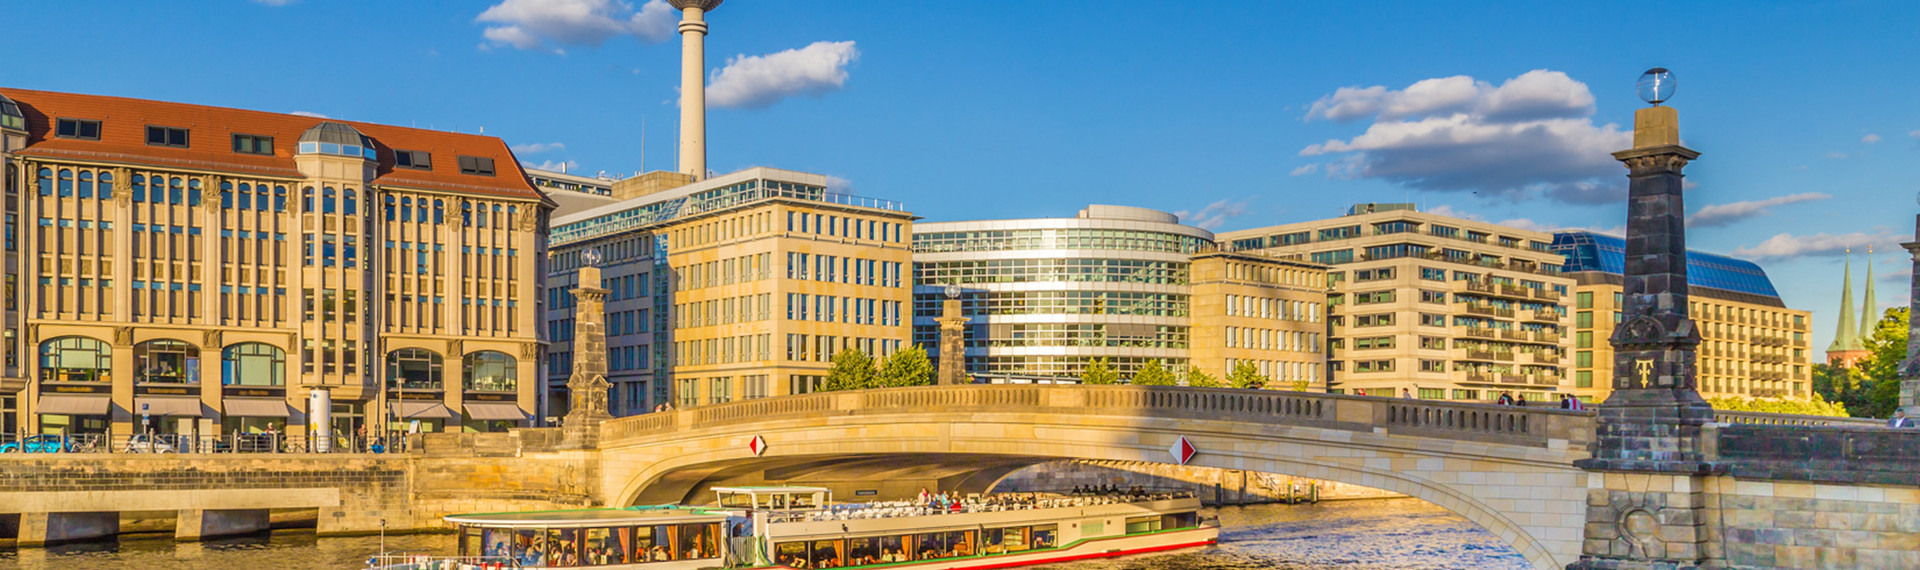 Mit dem Boot zur Sightseeing-Tour in Berlin | Pissup Reisen